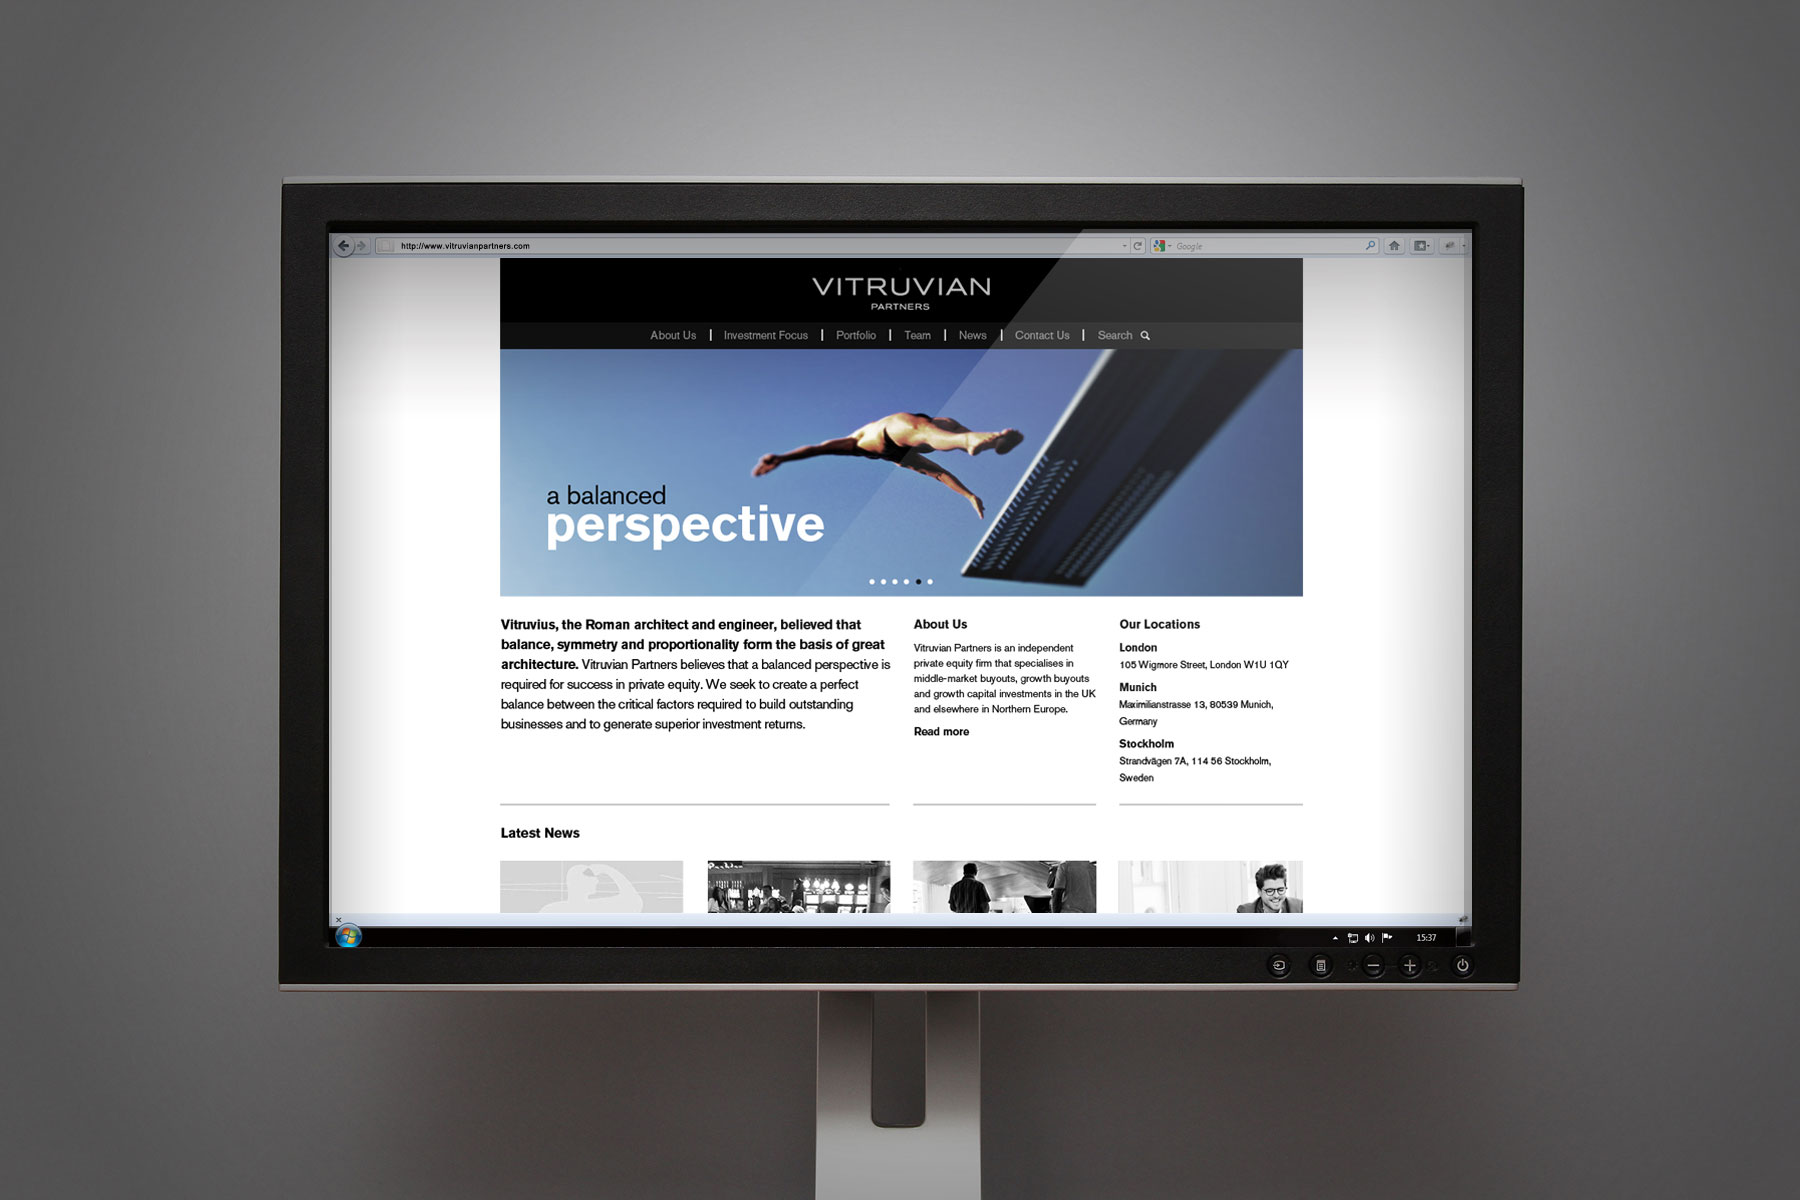 The homepage is striking and features a confident brand proposition at the top